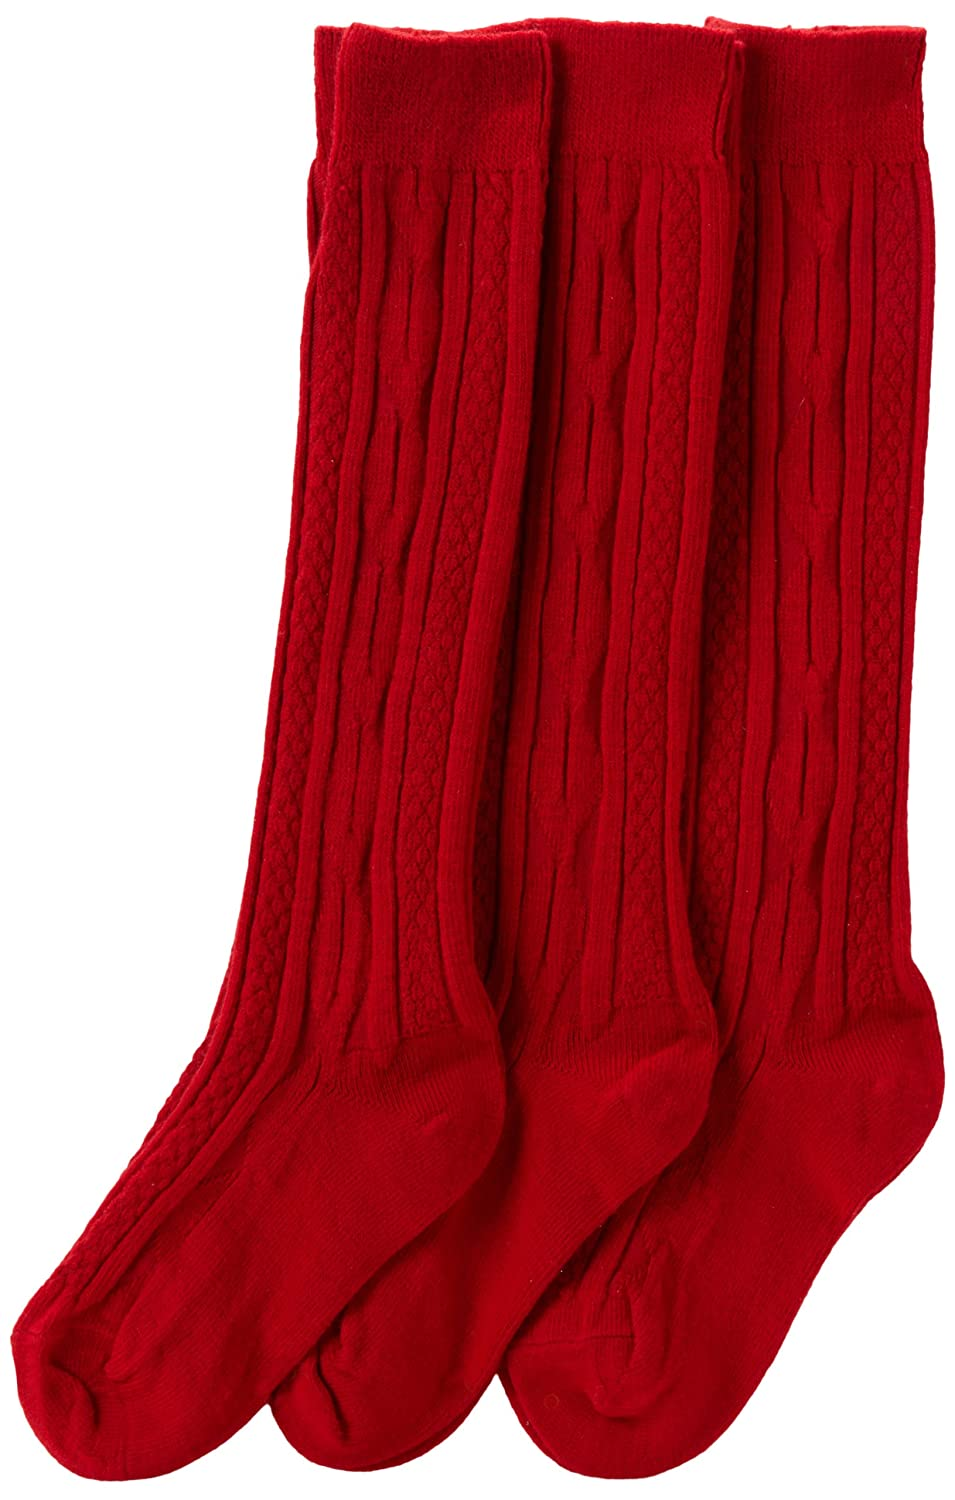 Amazon.com: Jefferies Socks Big Girls' Cable-Knit Knee-High Sock ...